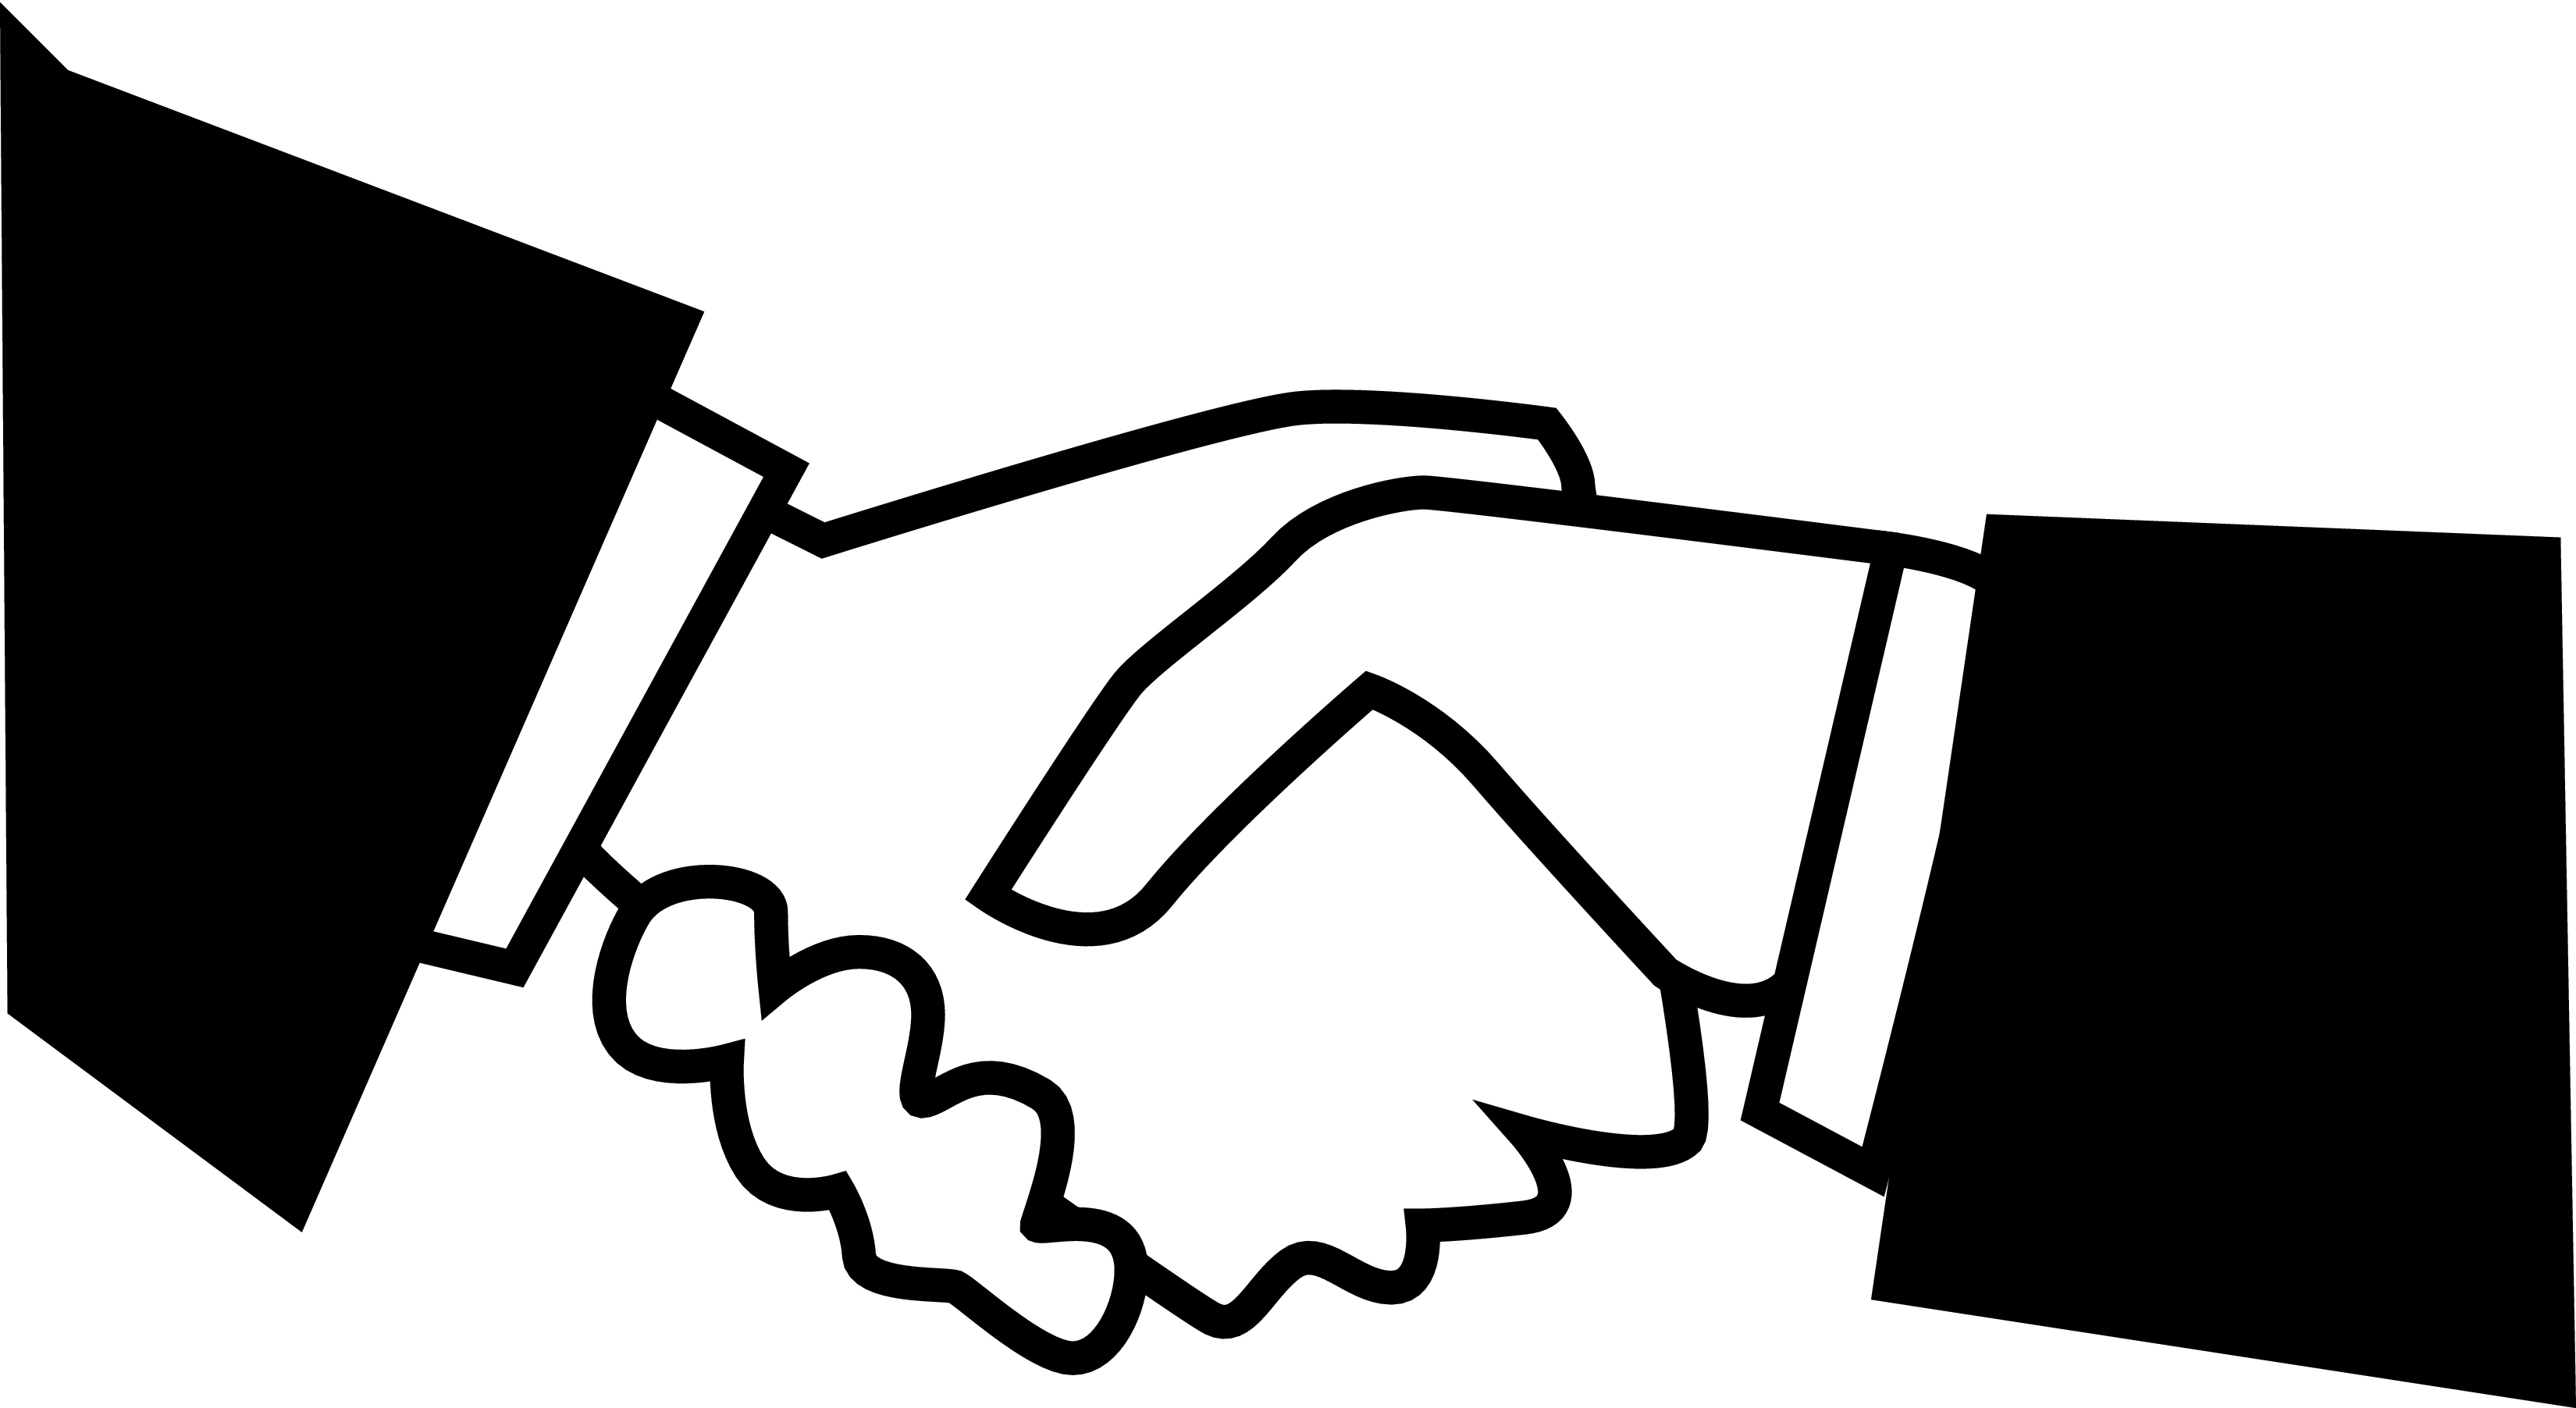 Hand black and white shaking hands black and white clipart.